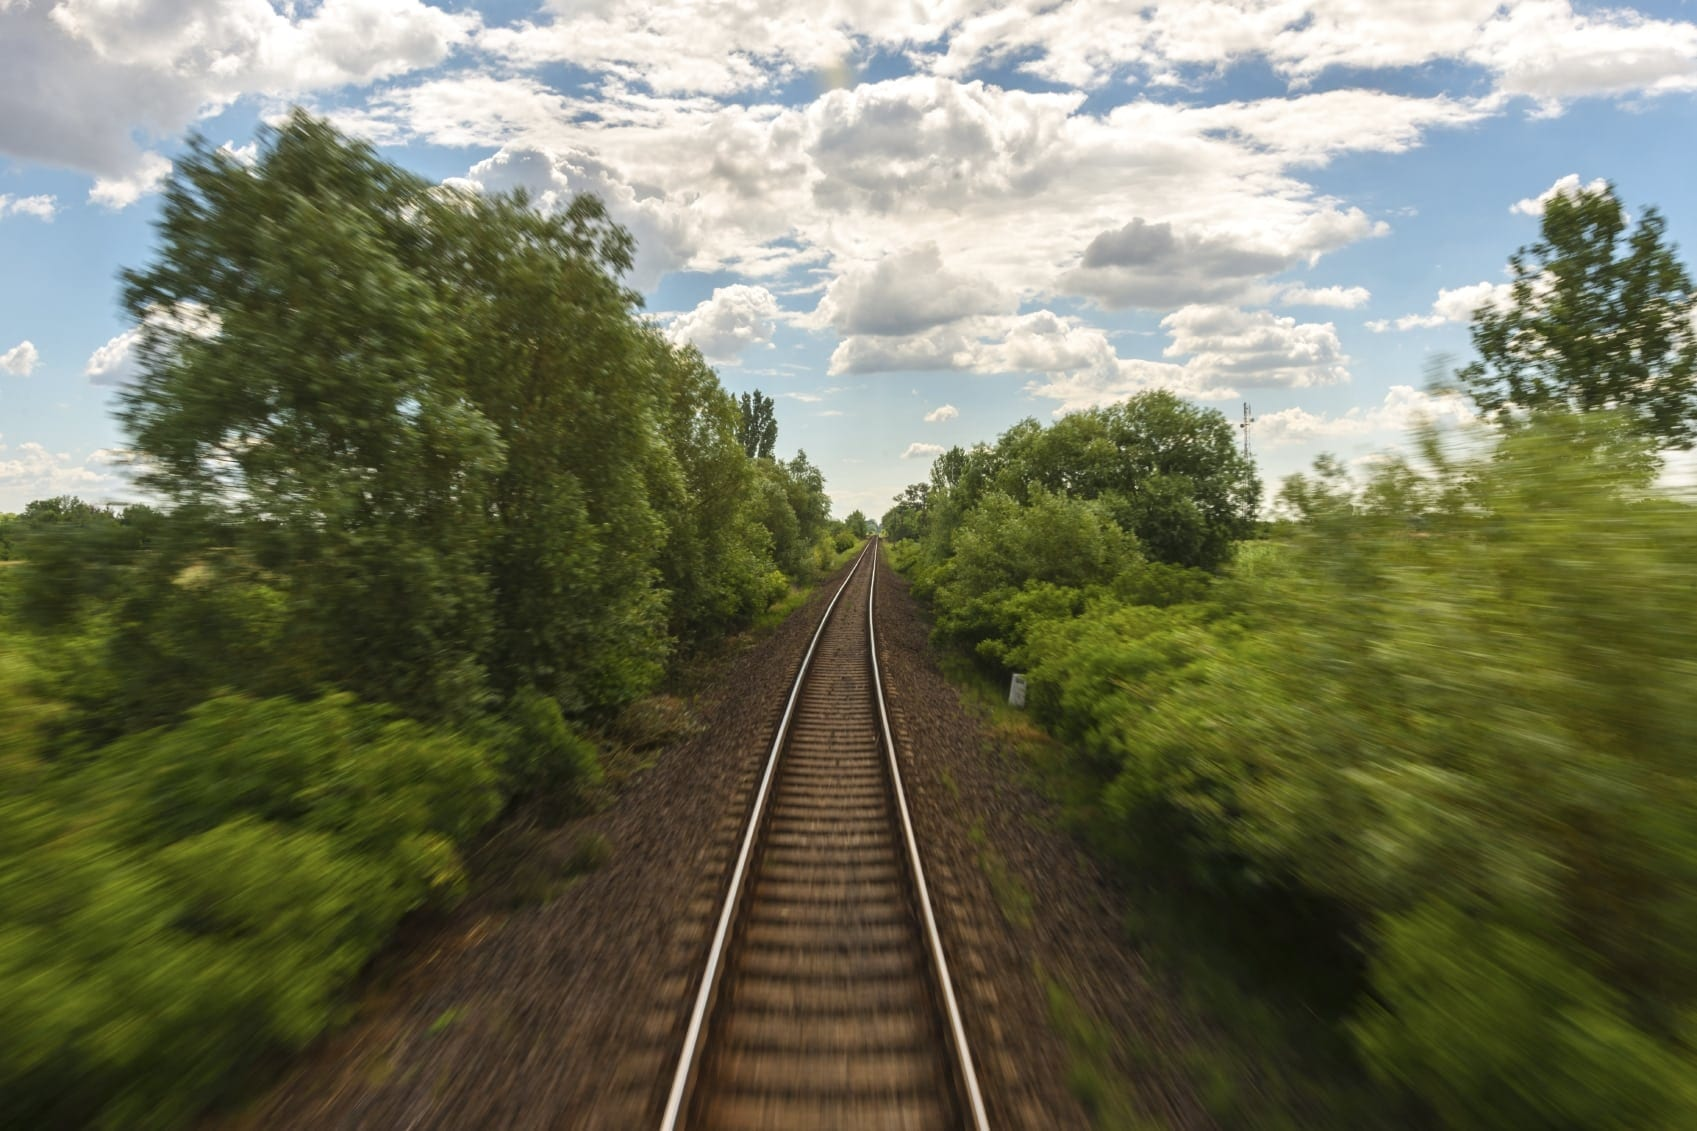 Railroad Tracks In A Rural Area Stock Photo